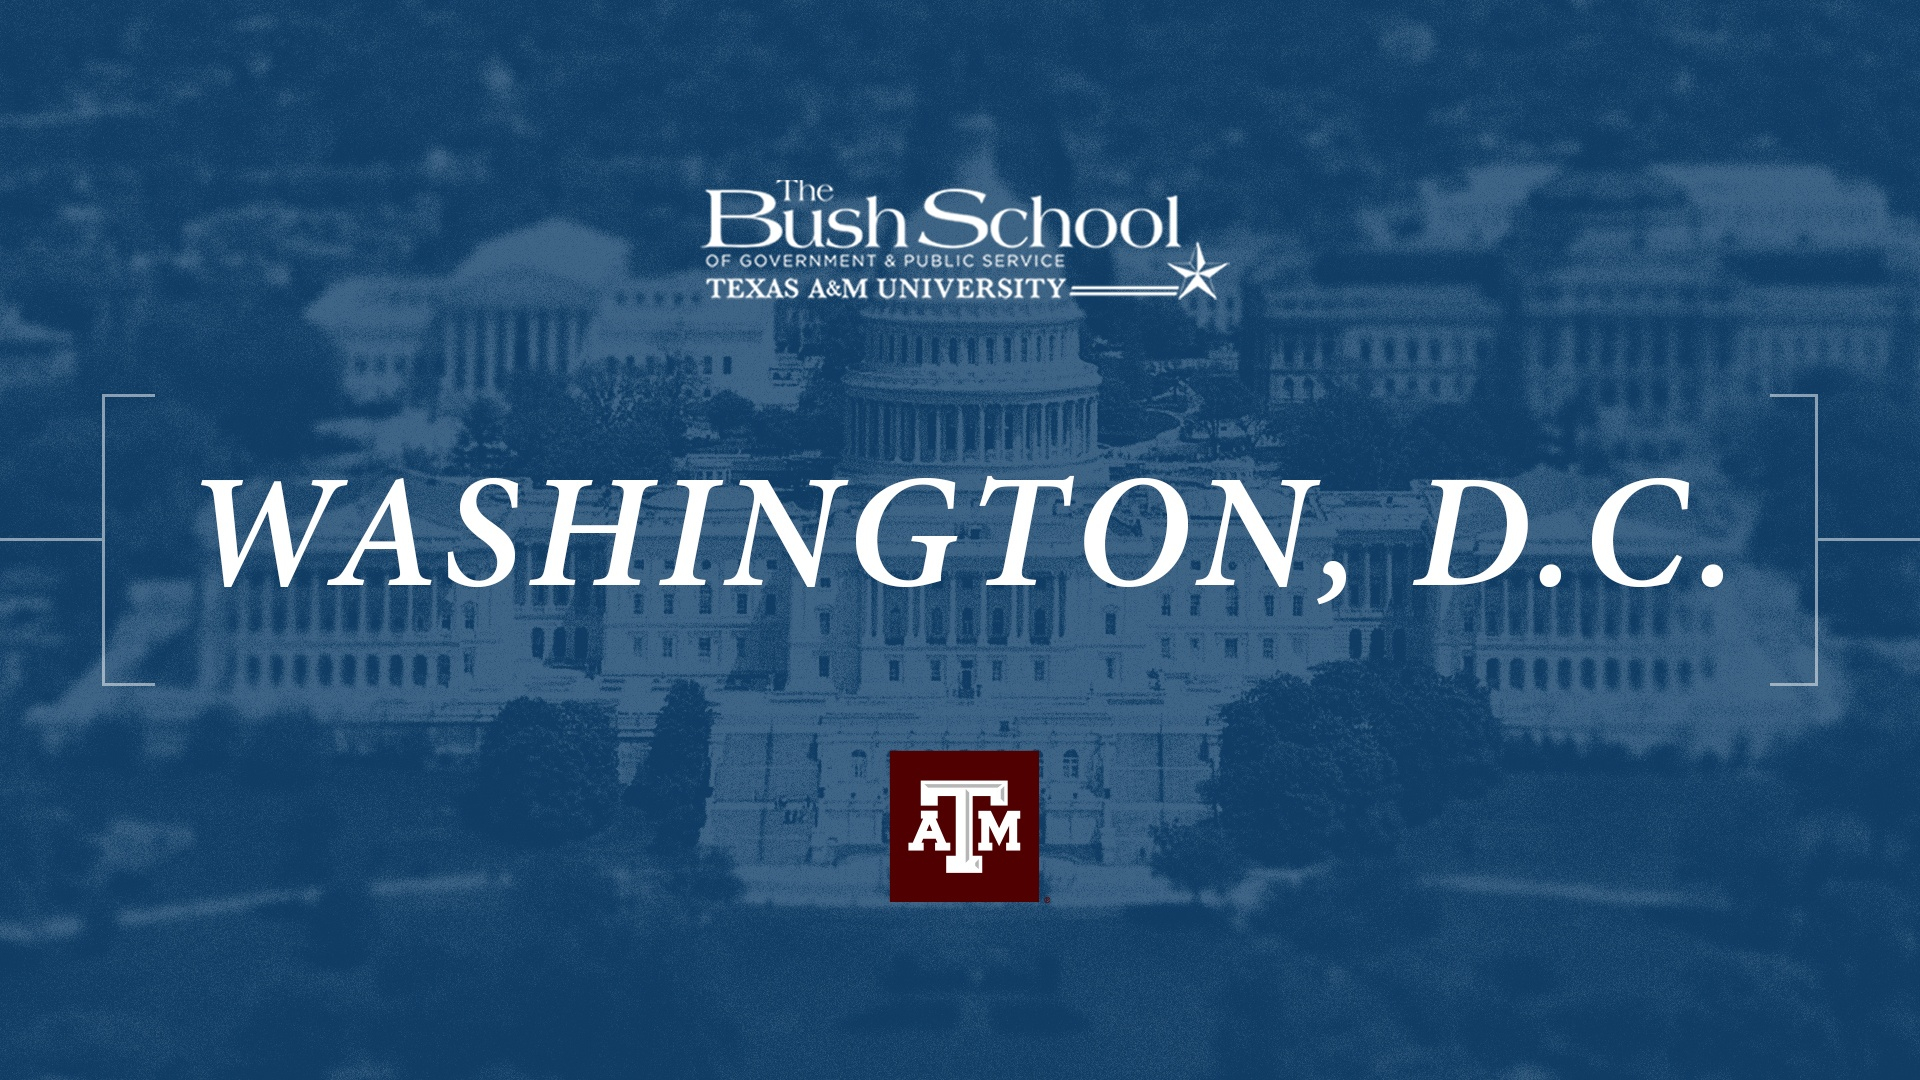 Texas A&M Teaching Site Bolsters Legacy Of Bush 41 In D.c within Spring Semester 2021 Tx A&M College Station